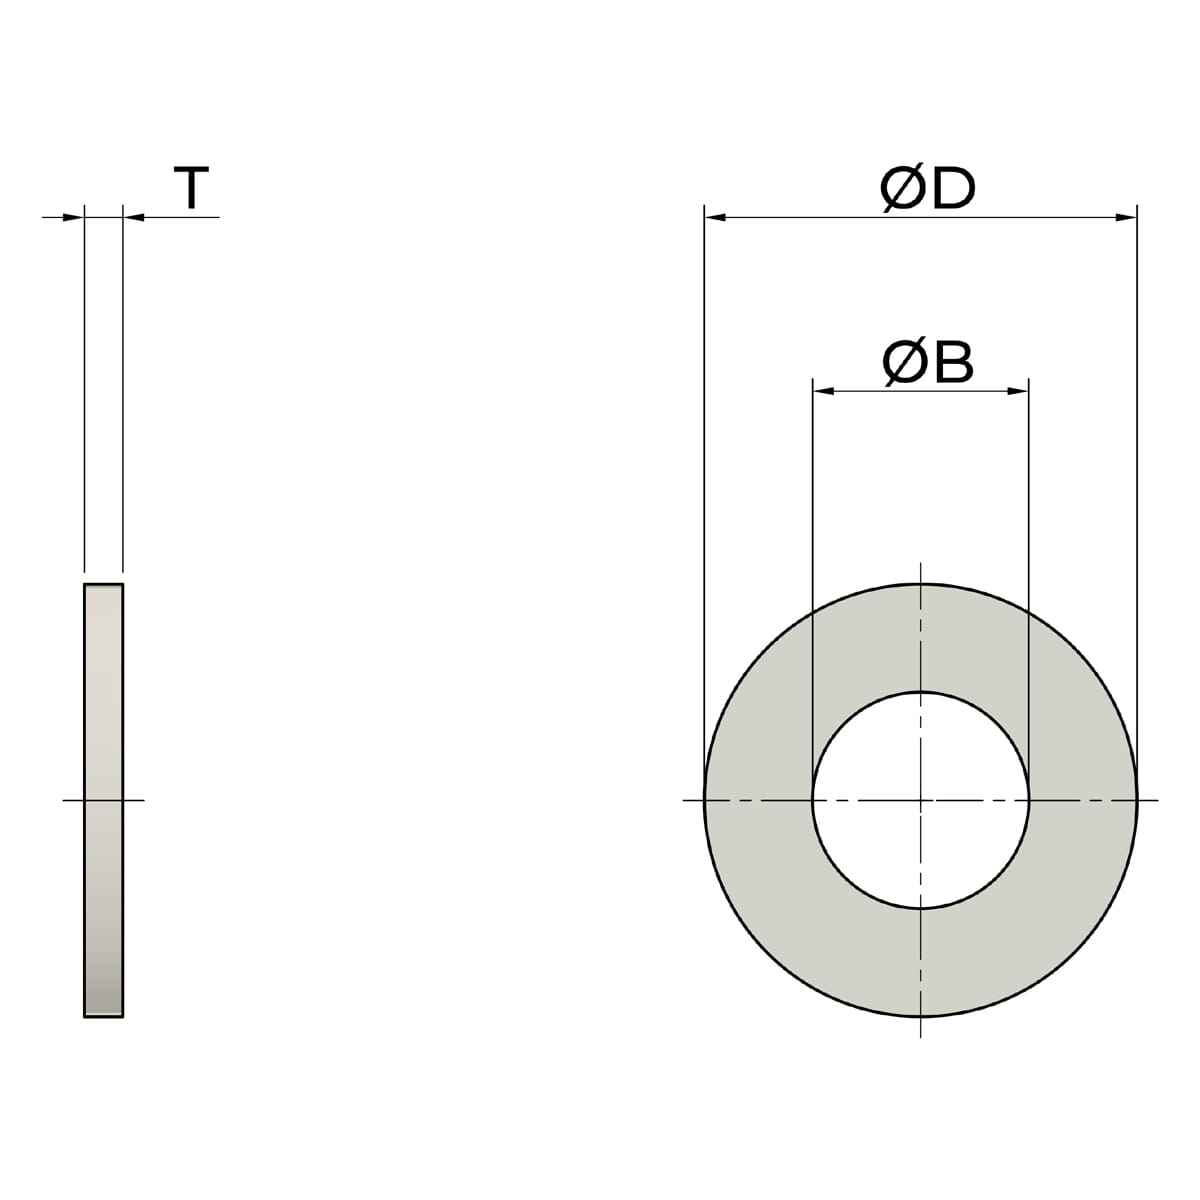 13.3mm x 22mm x 1.5mm Flat Washers - Nylon Drawing